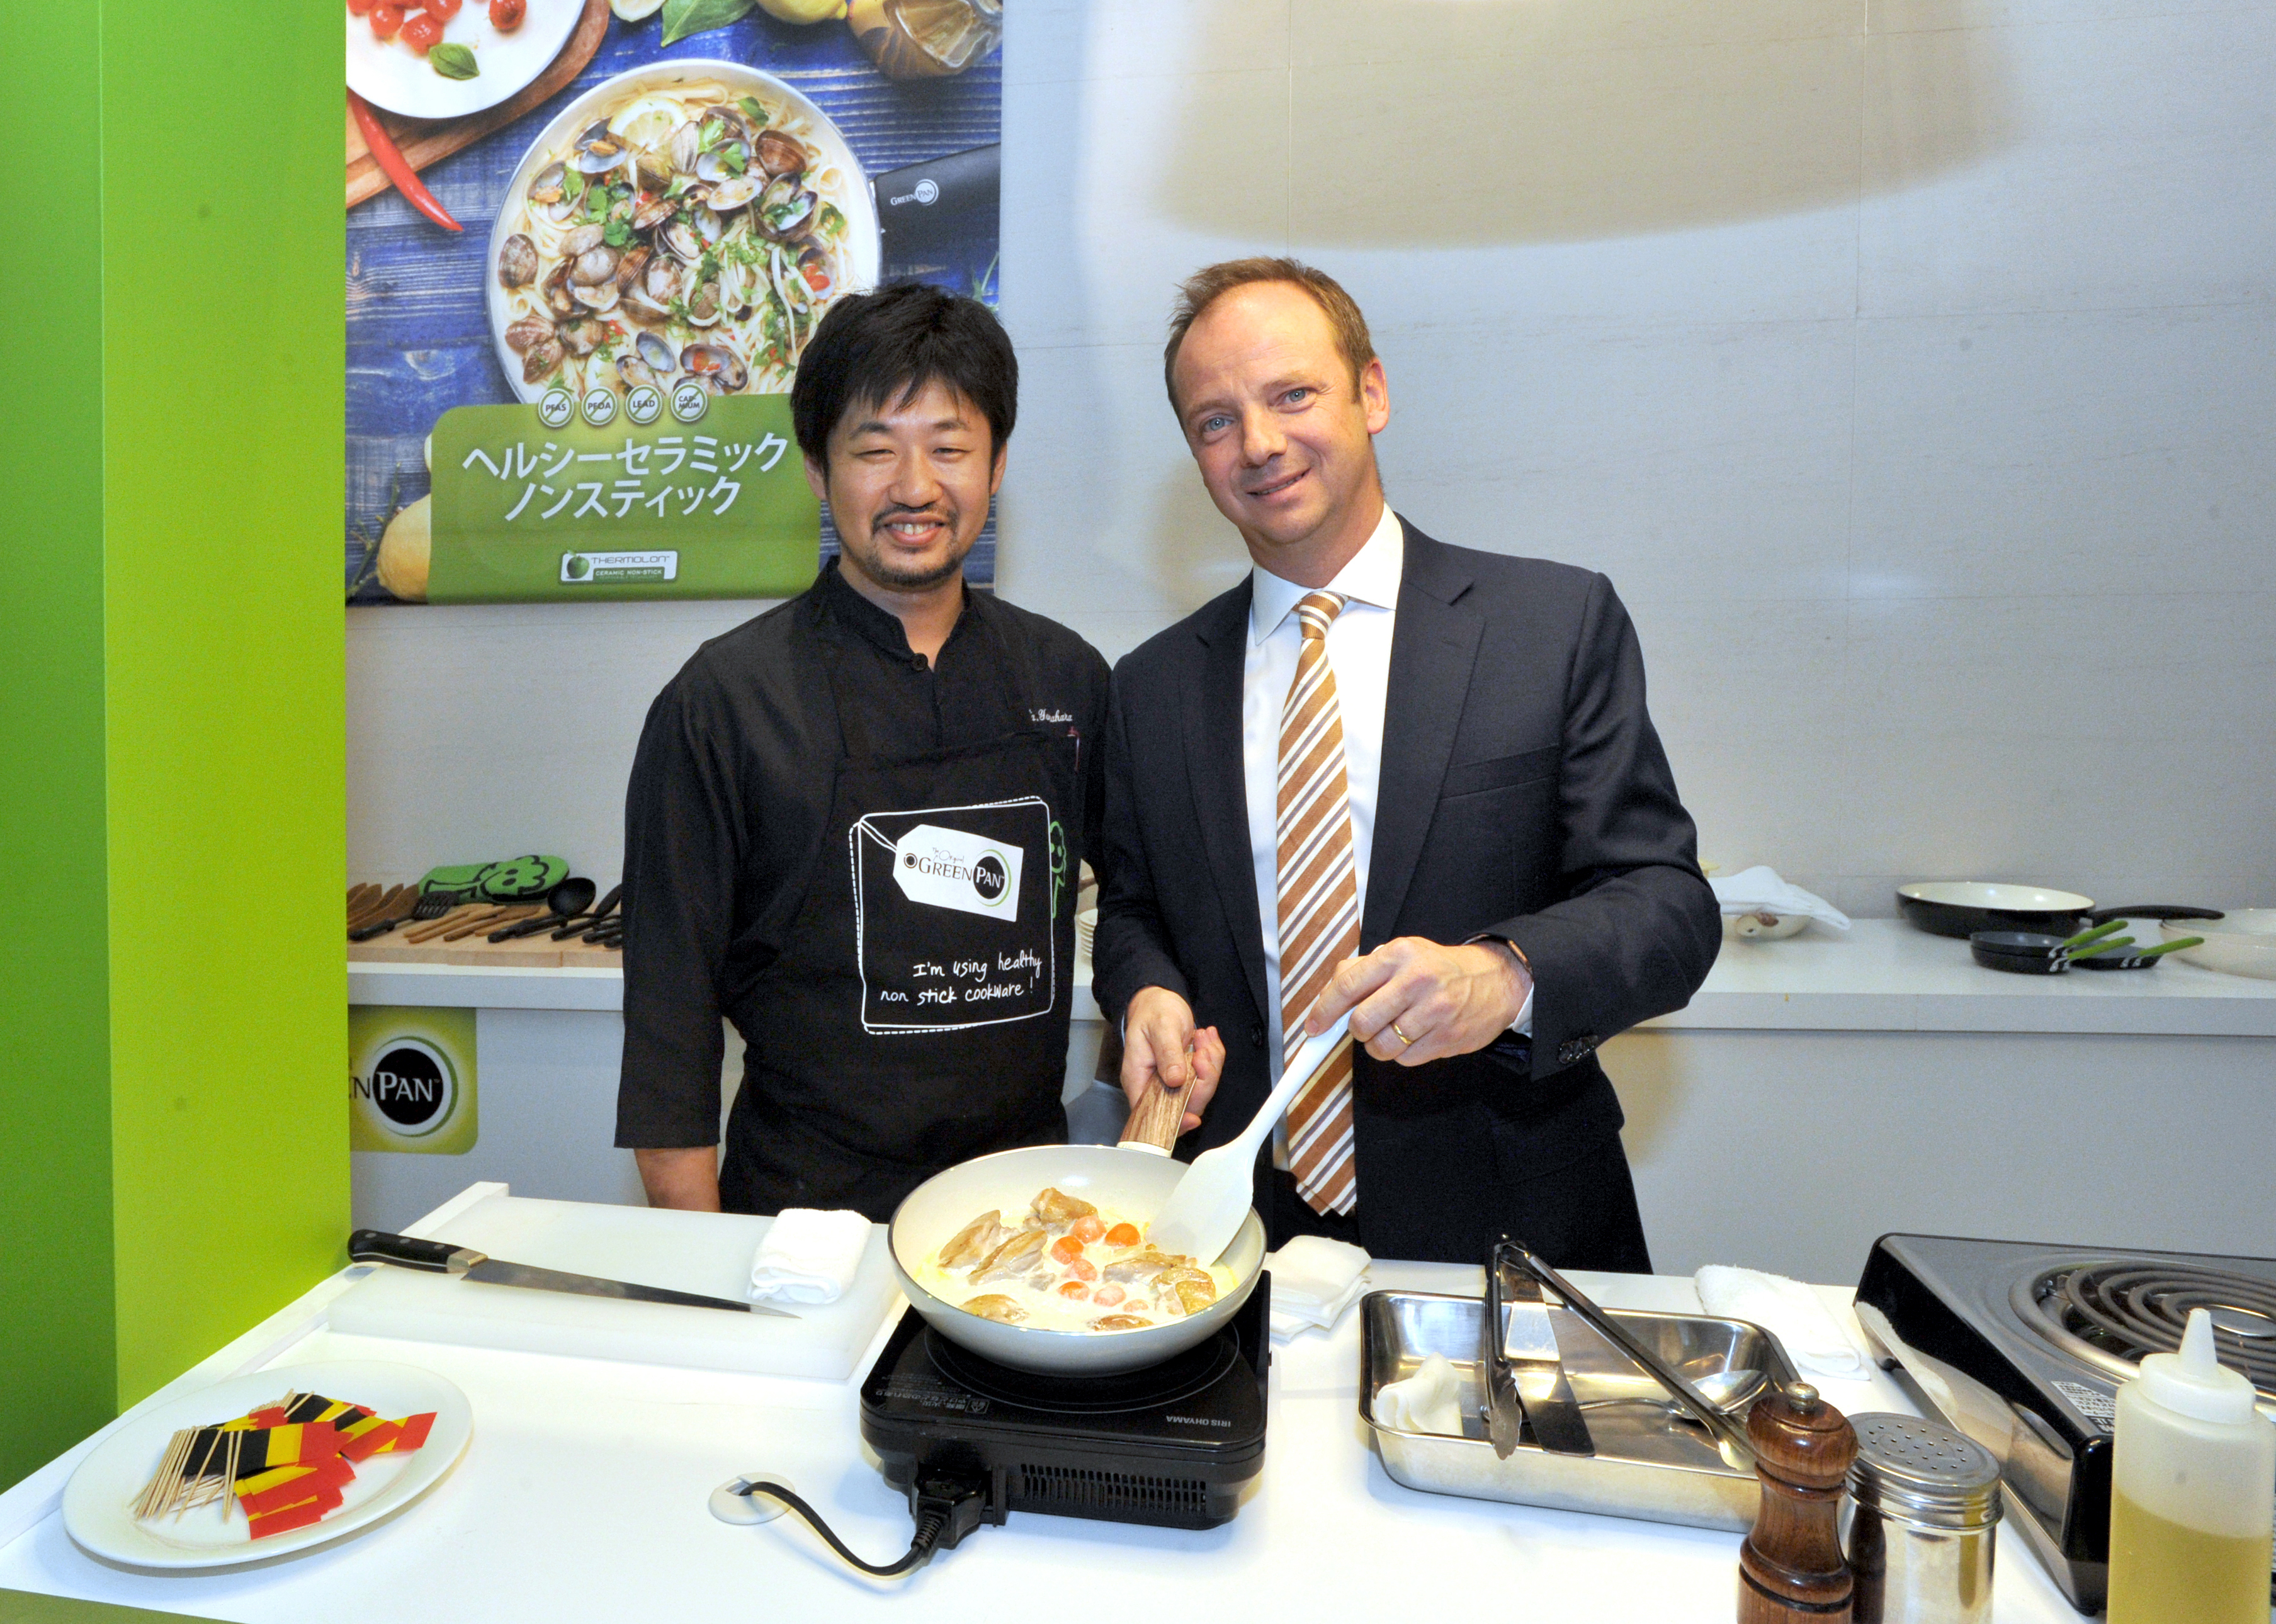 Wim de Veirman (right), CEO of The Cookware Company and GreenPan Japan, and Belgian Brasserie Court Antwerp Central chef Keita Yamahara demonstrate cooking with the healthy ceramic non-stick GreenPan during a press conference at the Belgian embassy in Tokyo on Oct. 23. | YOSHIAKI MIURA